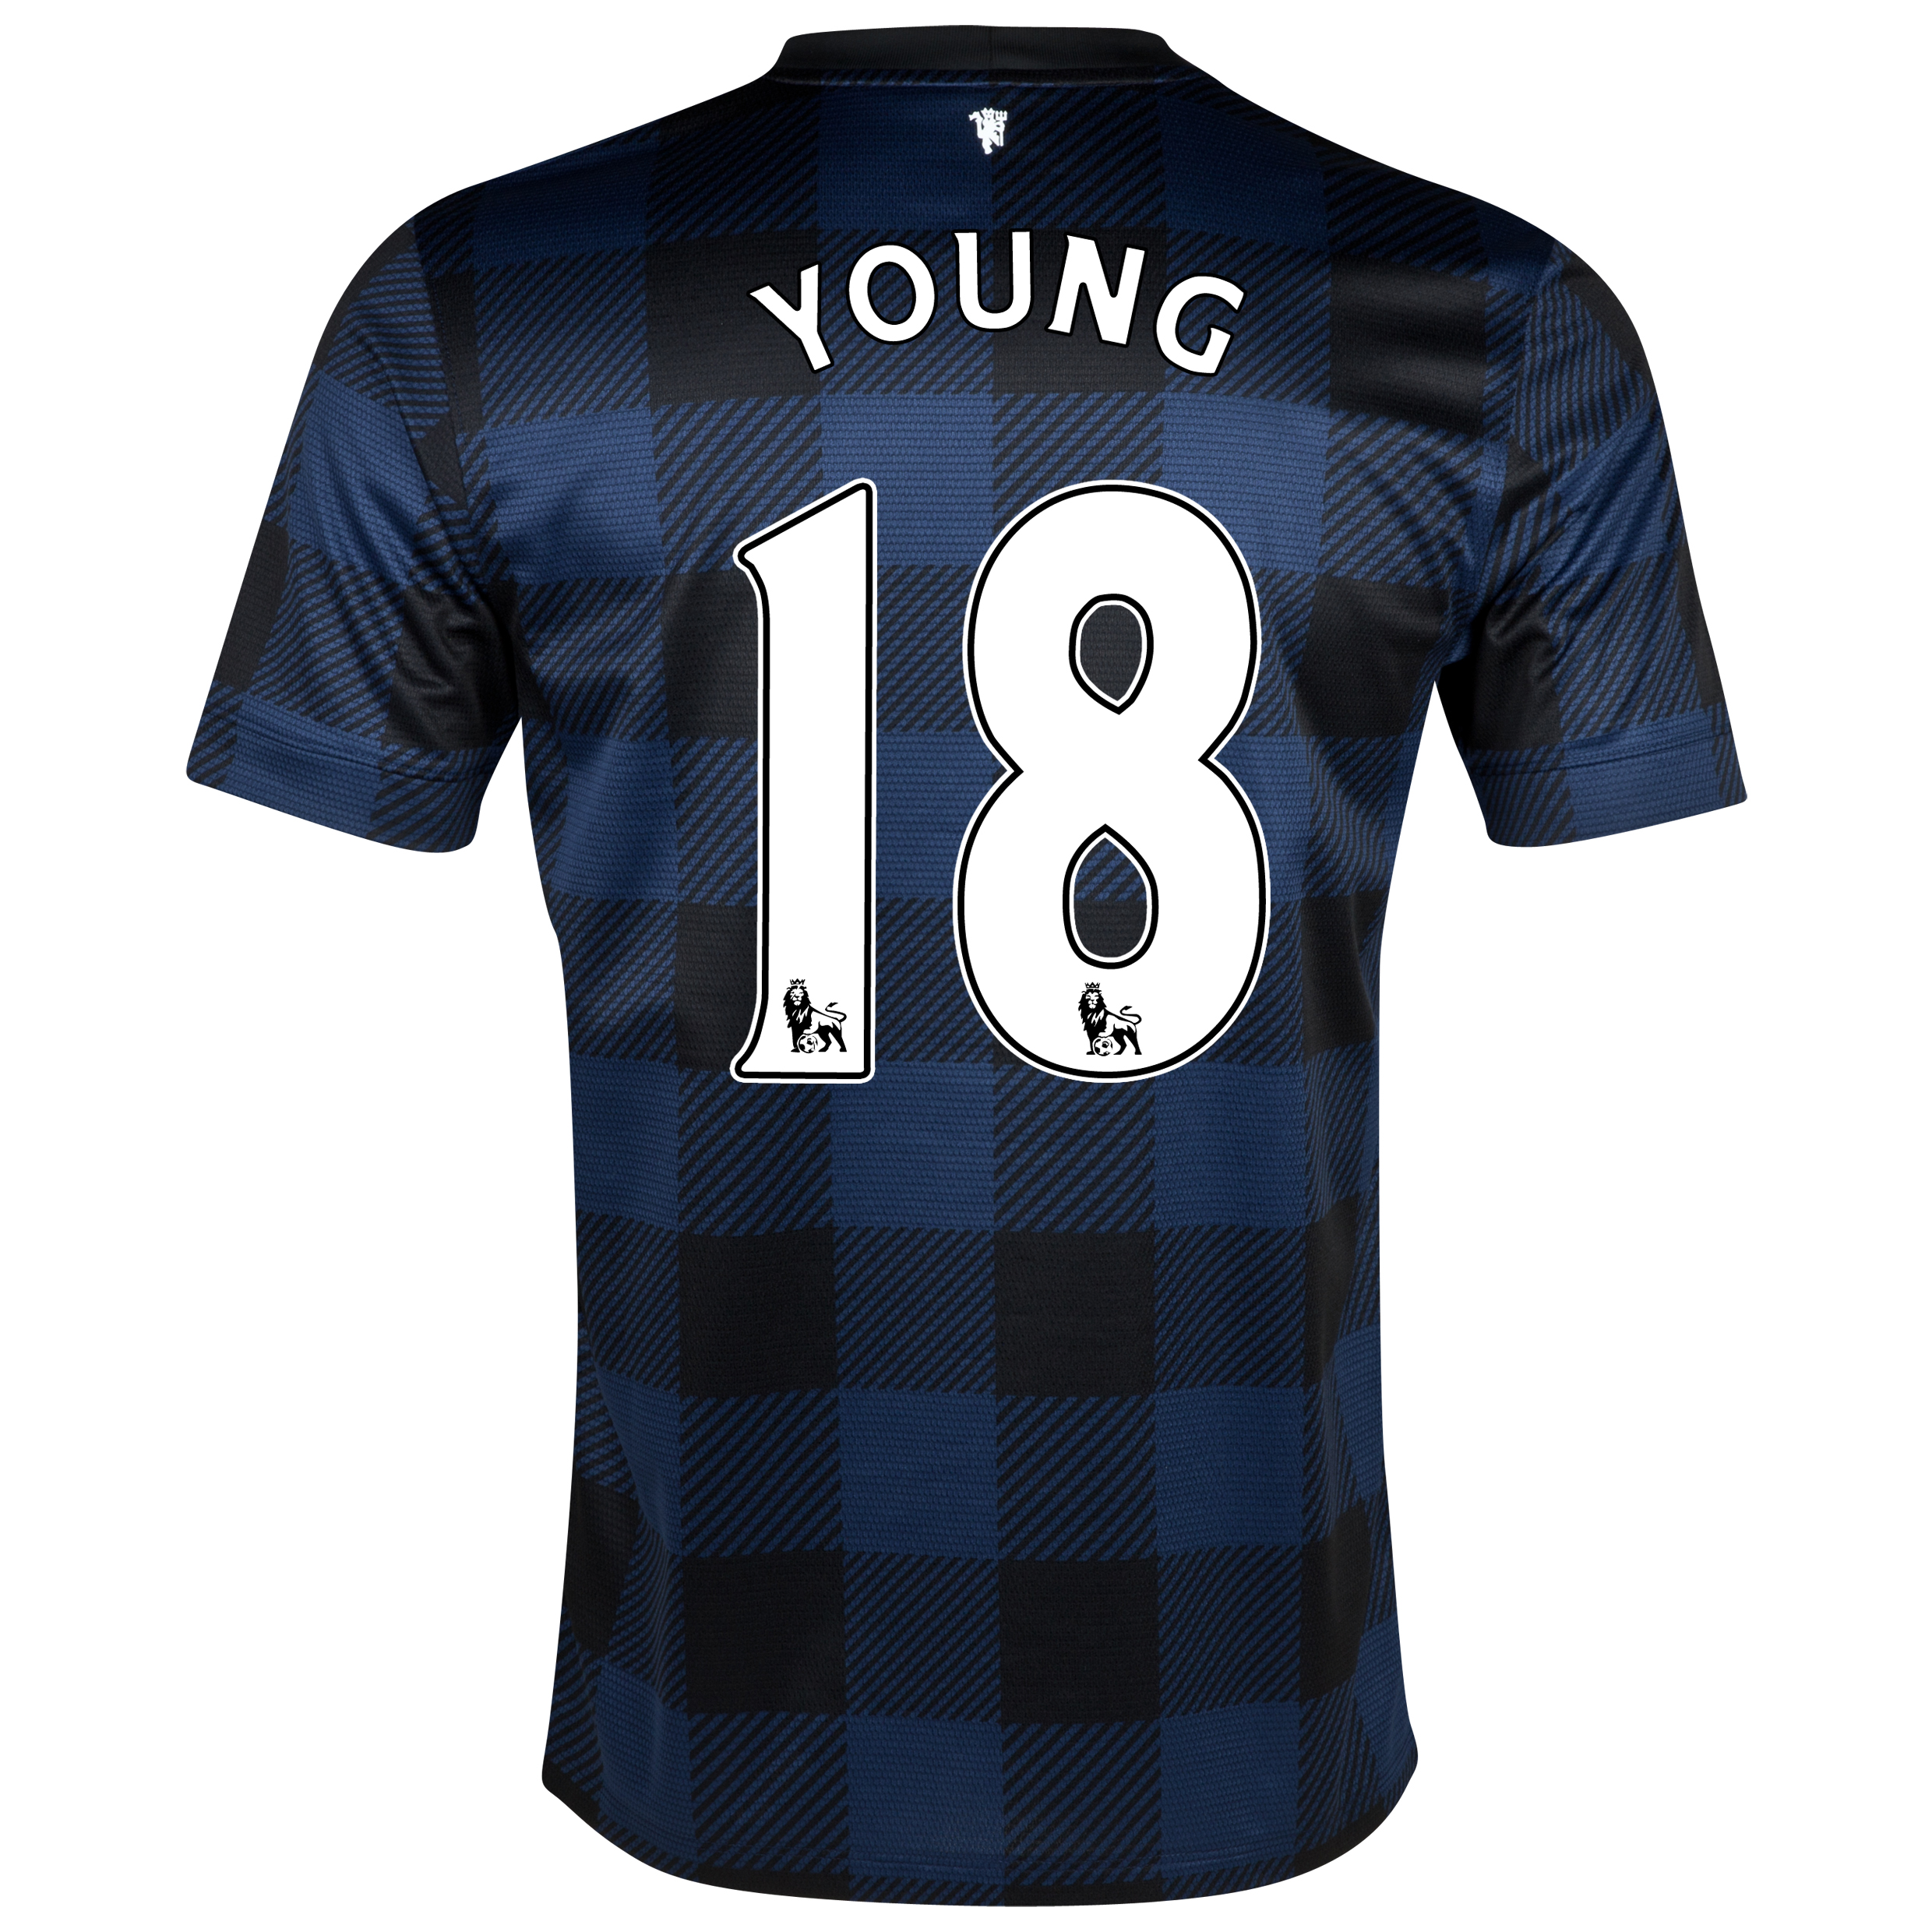 Manchester United Away Shirt 2013/14 with Young 18 printing